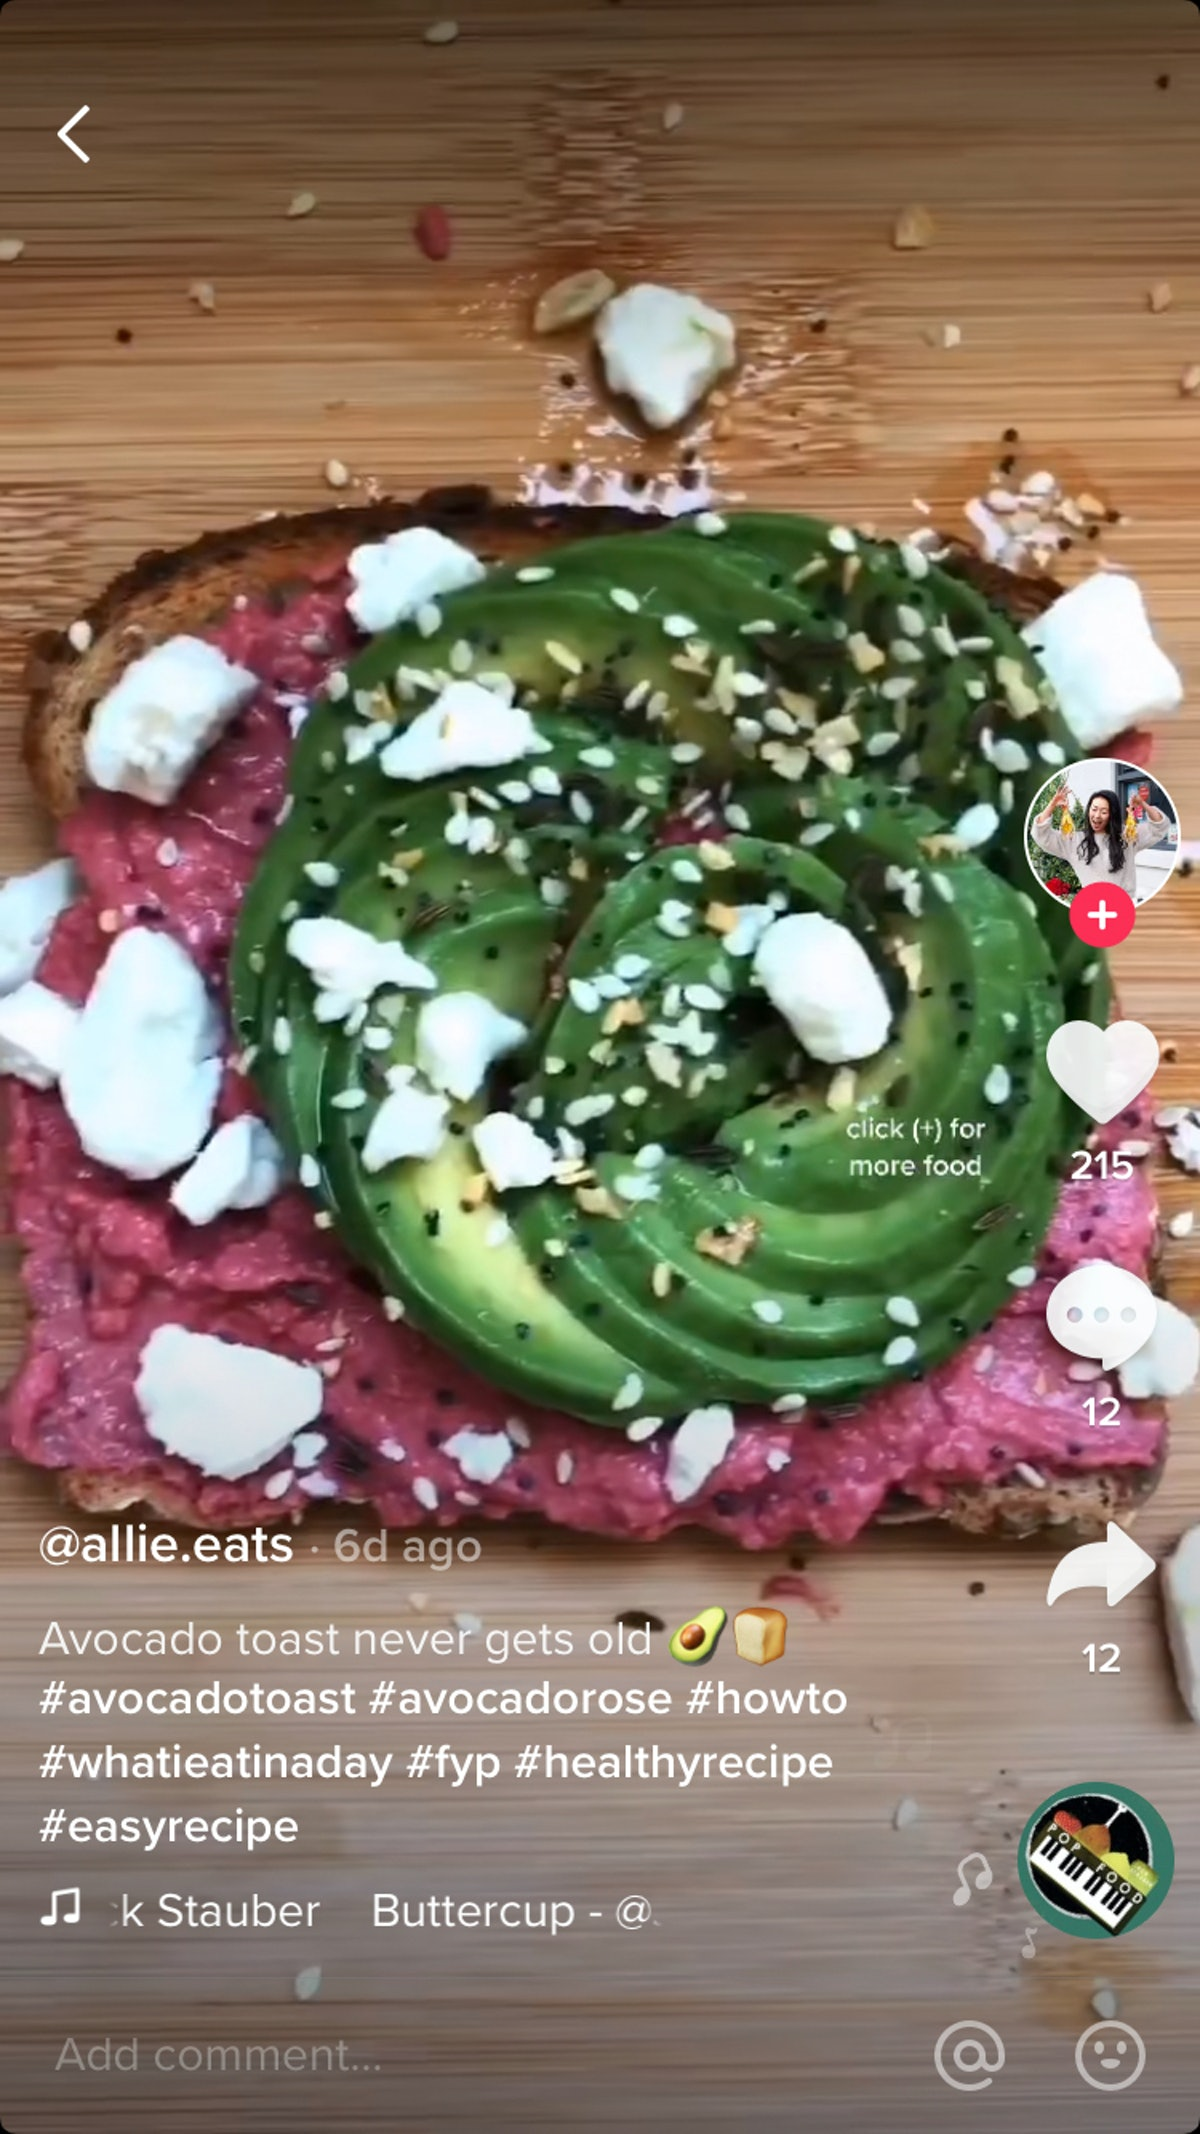 An avocado, shaped like a rose, sits on top of red beet hummus, with feta and bagel seeds sprinkled on top.